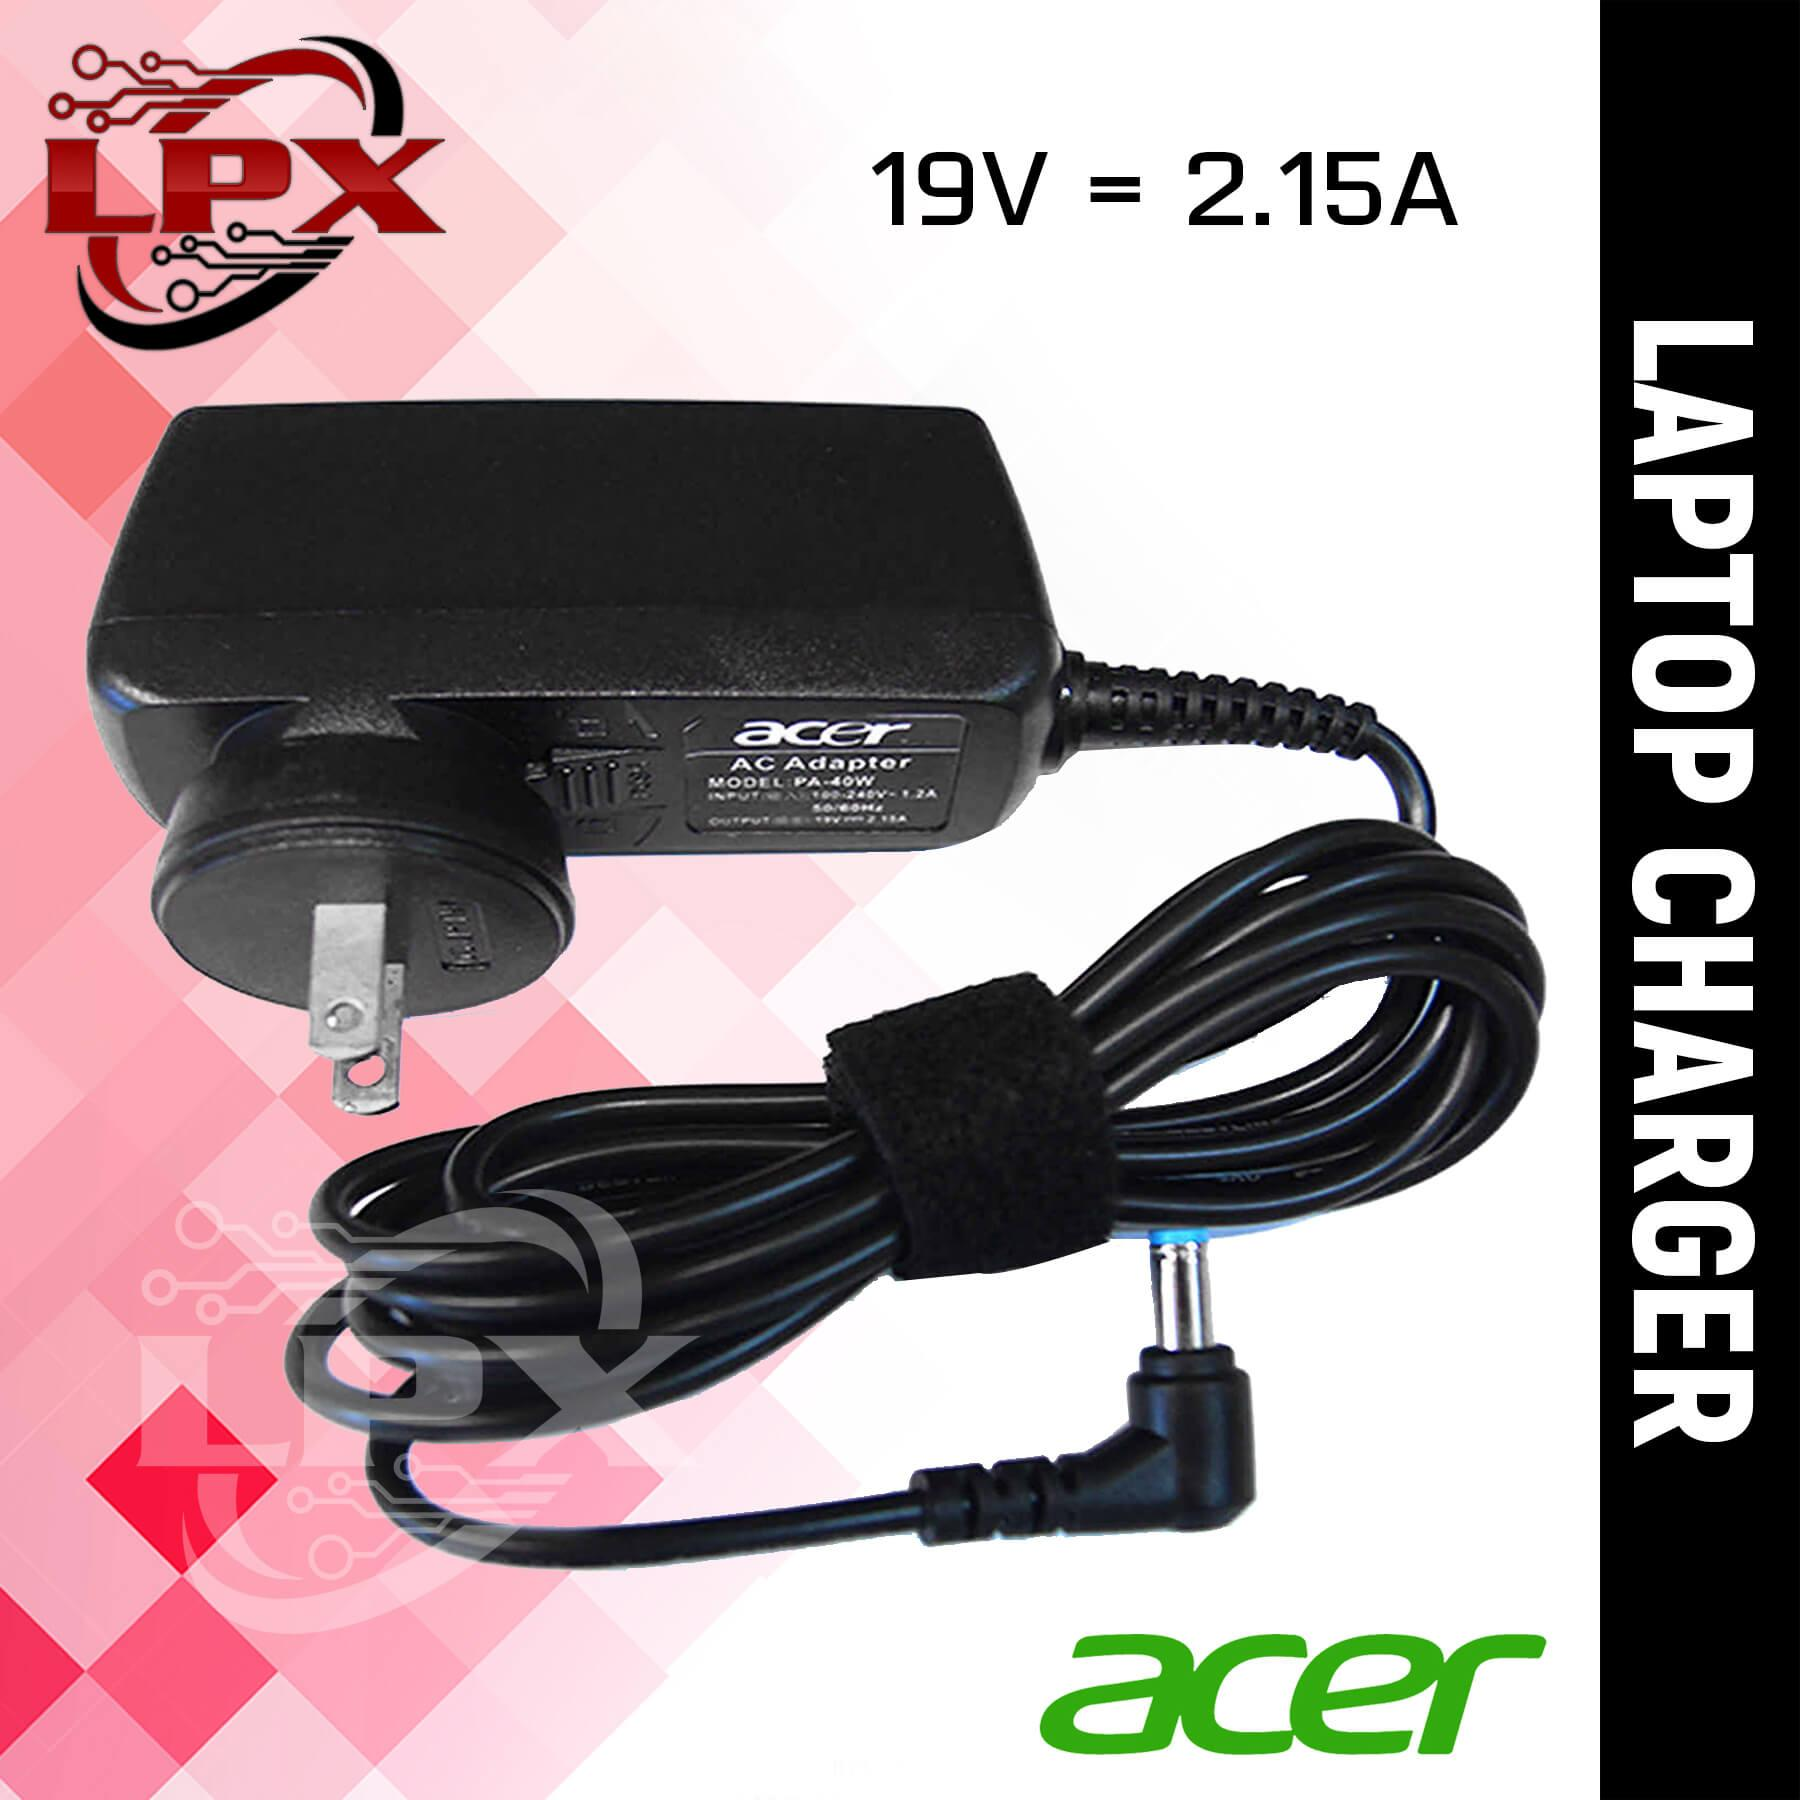 Acer Computer Accessories Philippines Pc For Sale Adaptor Charger Notebook 19v 342a Laptop 215a Aspire 55mm X 17mm